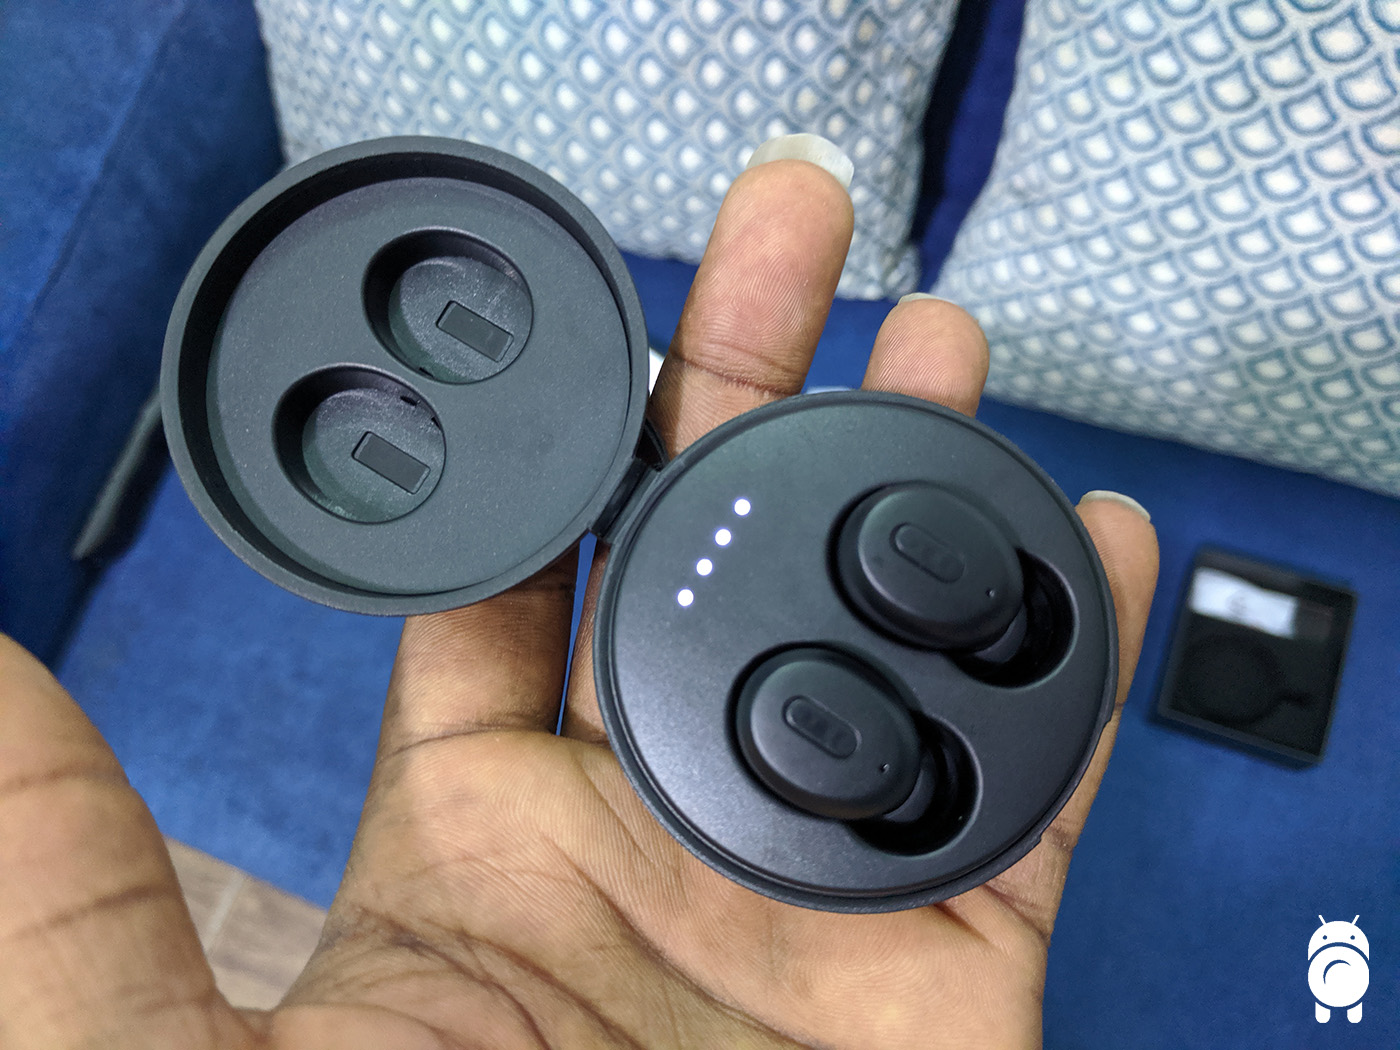 BEBEN X8 Bluetooth 5.0 True Wireless Earbuds Review